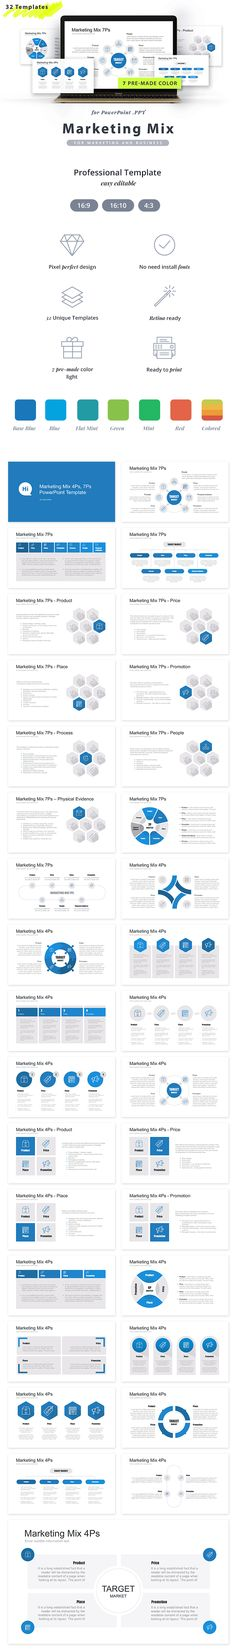 Bi-Weekly Marketing Report Dashboards \ PPT Pinterest - marketing report